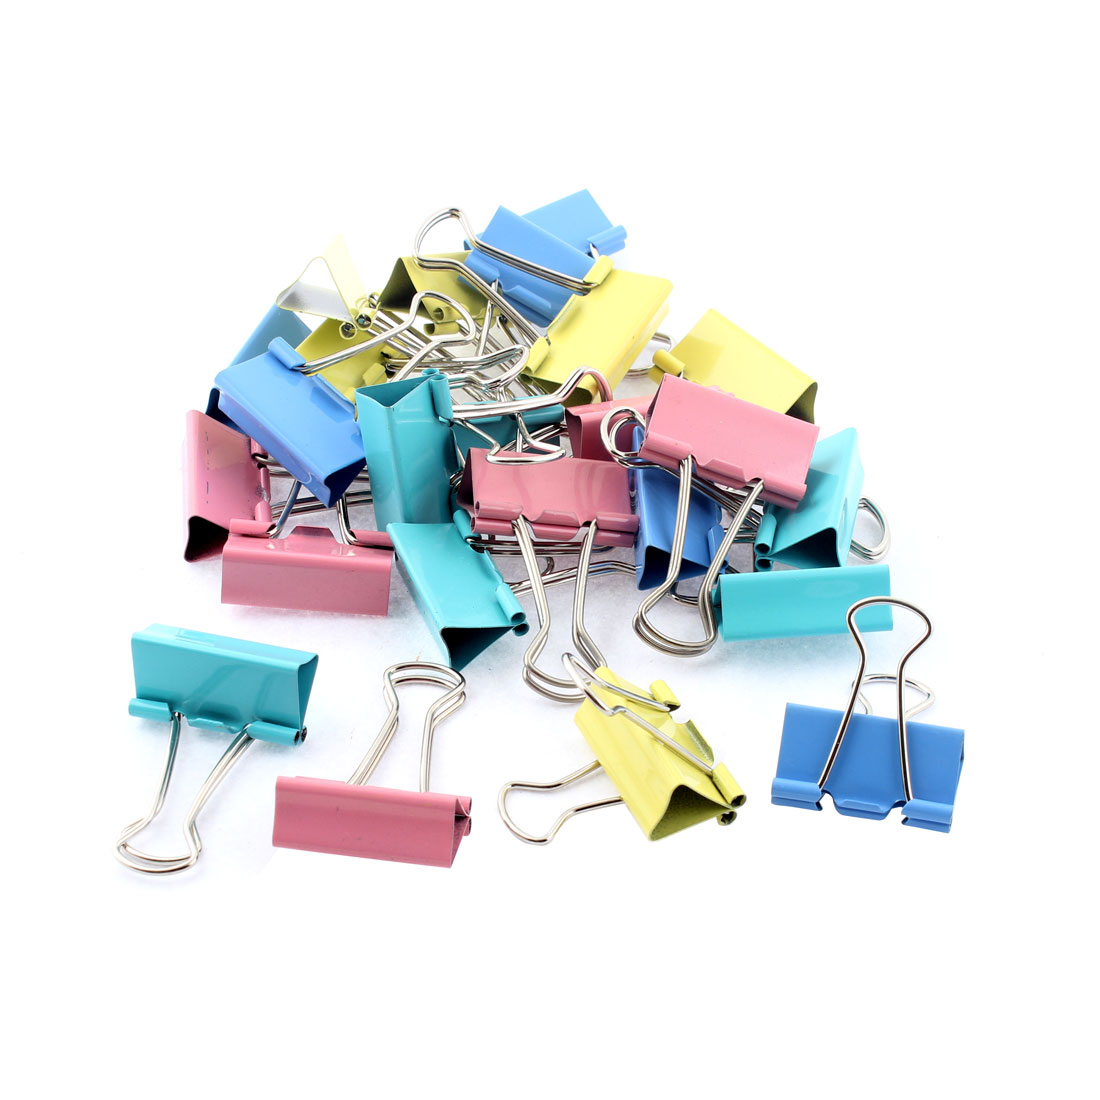 Office School Student Document Paper File Binder Clips Clamp Organizer 24pcs